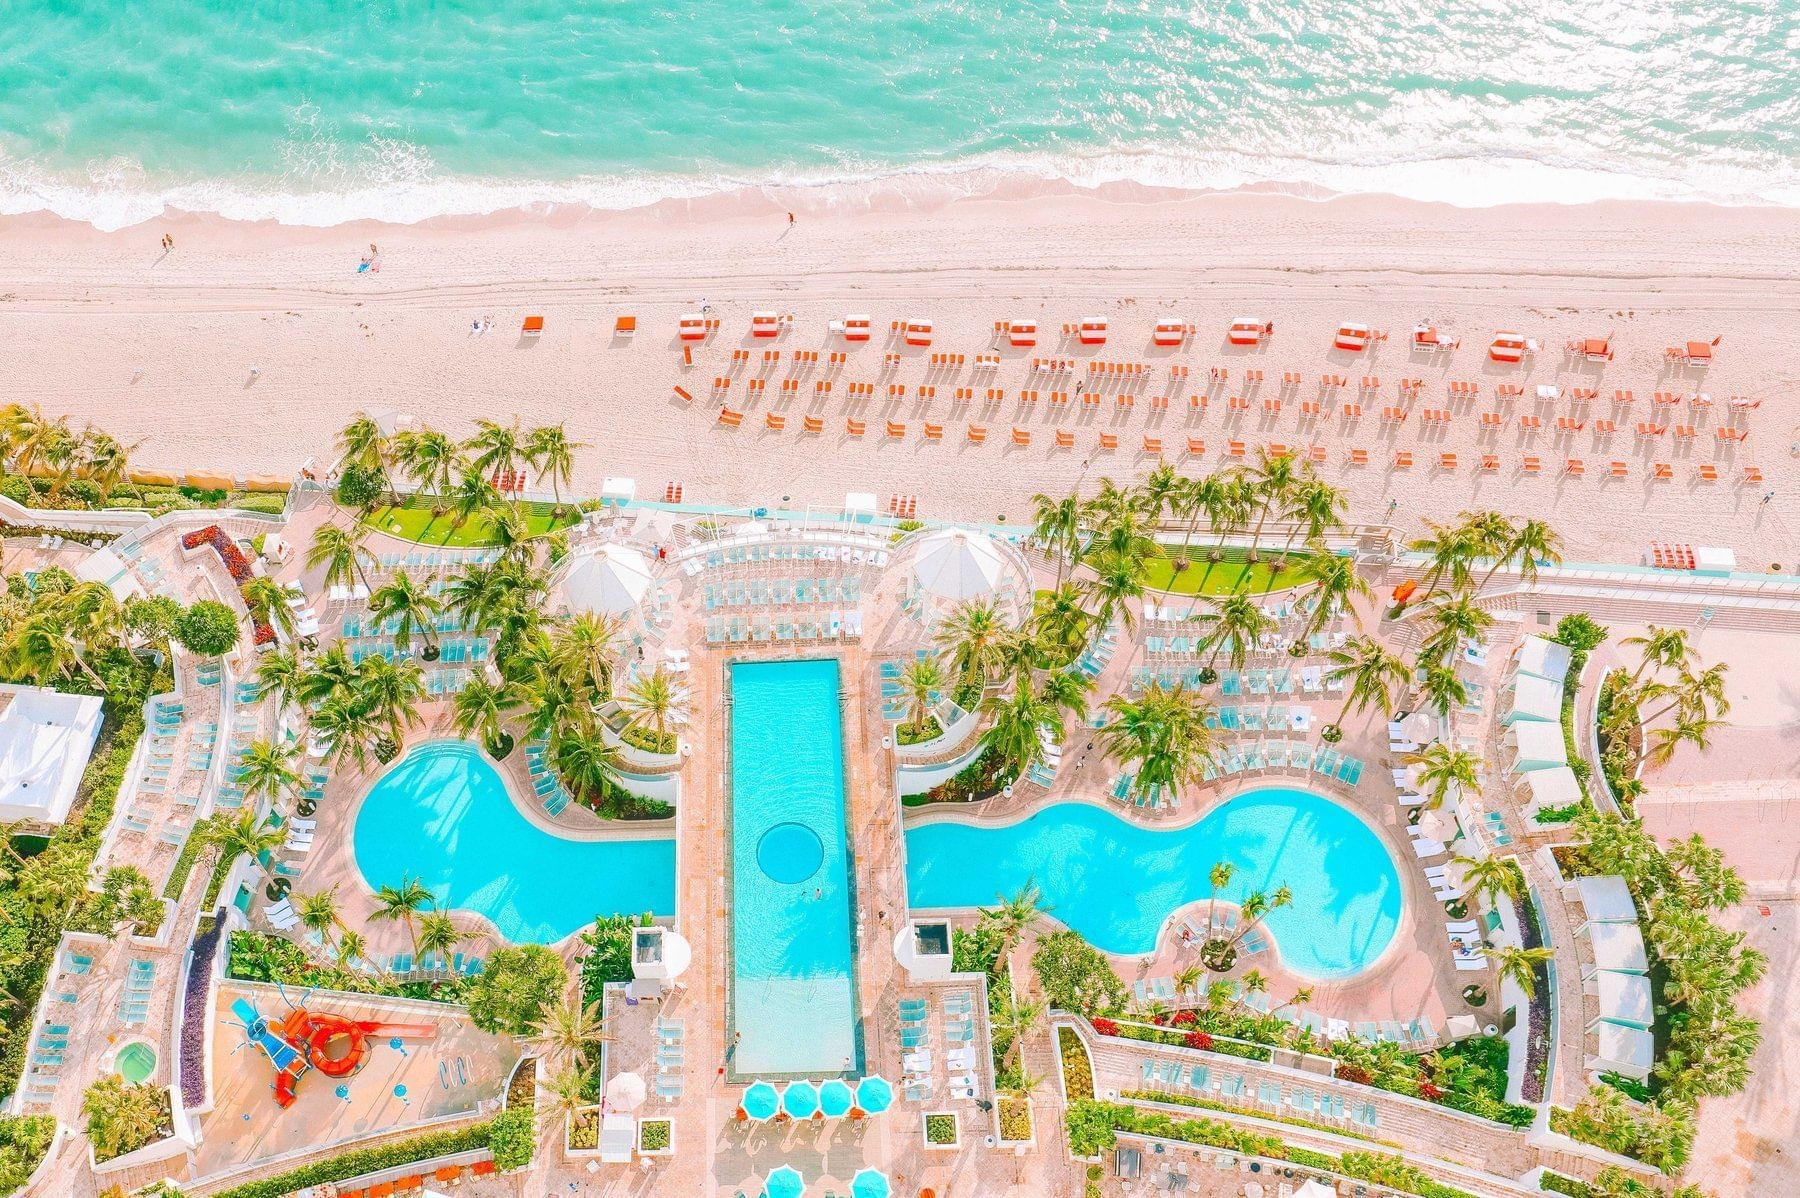 Balcony View Of The Diplomat Resort Pool and Beach